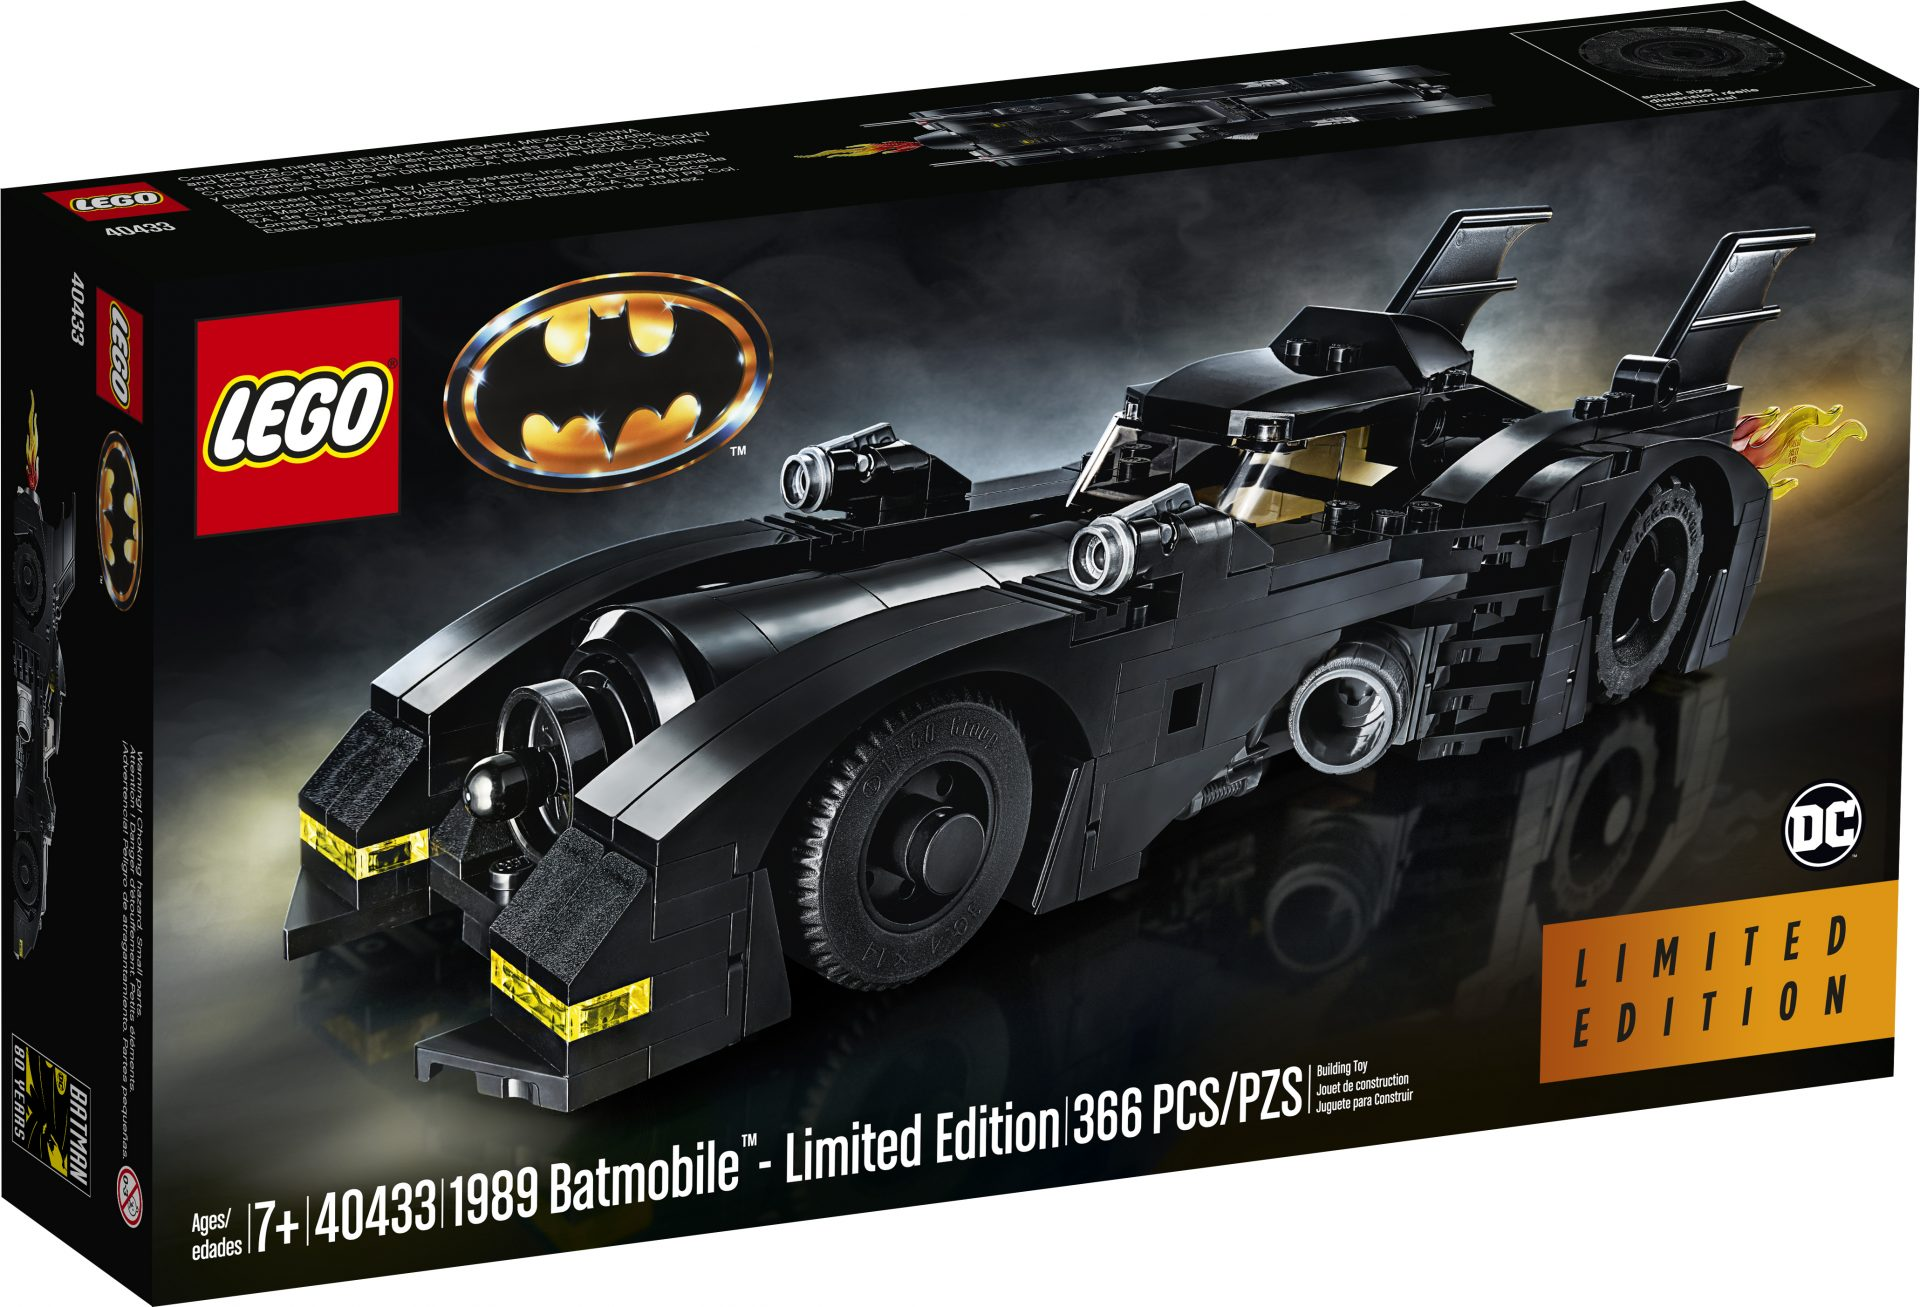 Box art for the new limited edition version of the new LEGO Batmobile